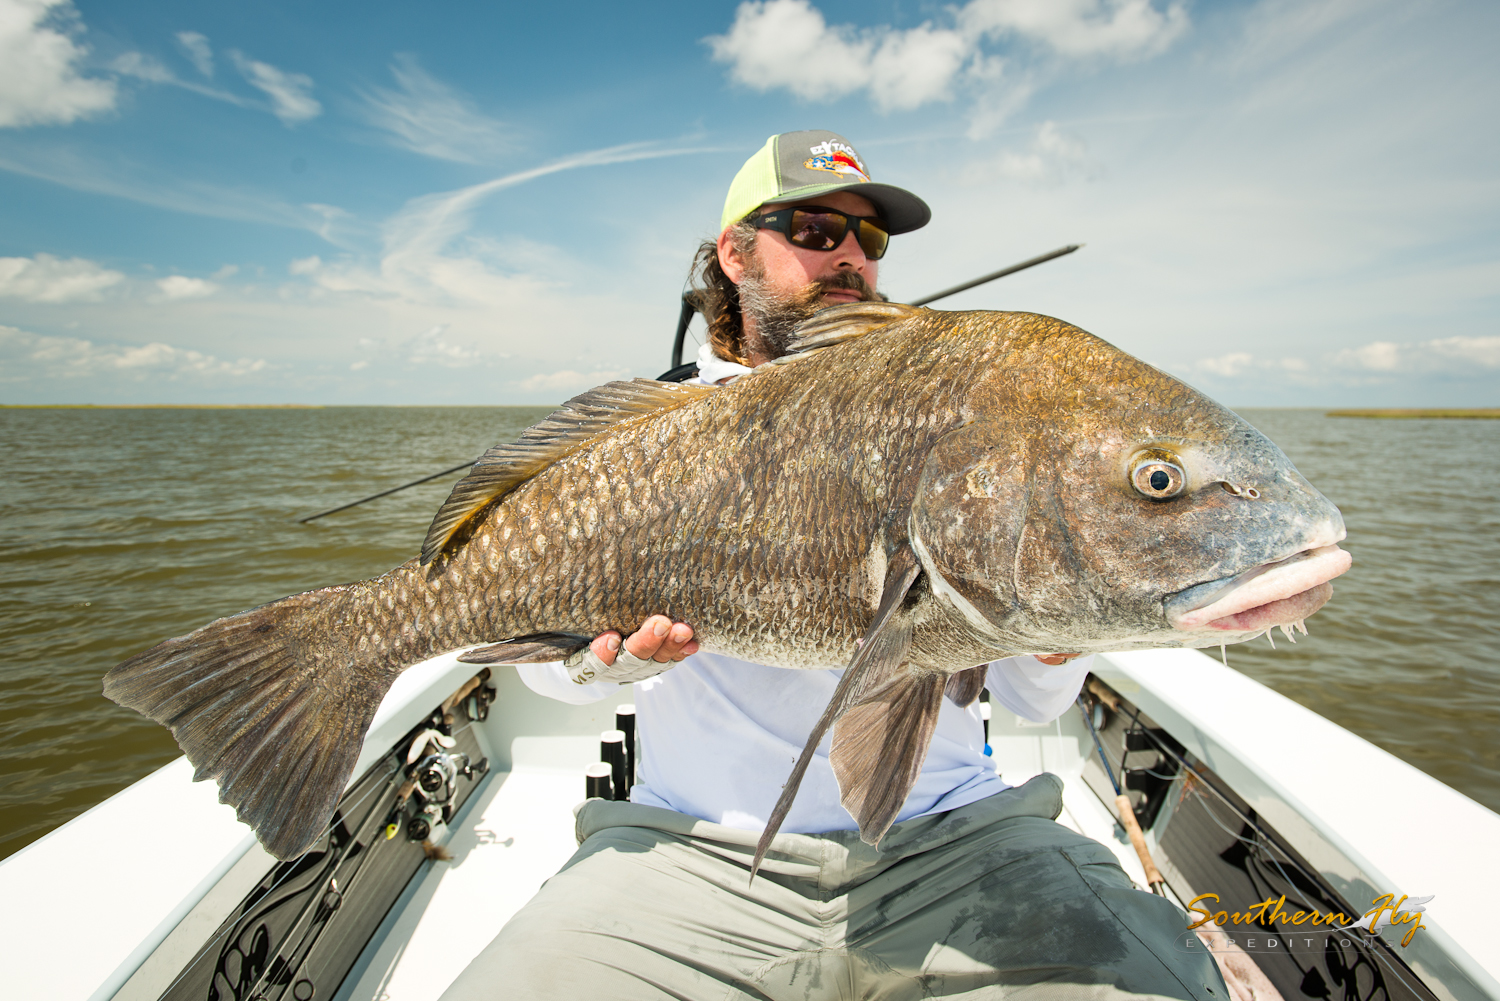 Reeling in Monster Reds in New Orleans with Southern Fly Expeditions